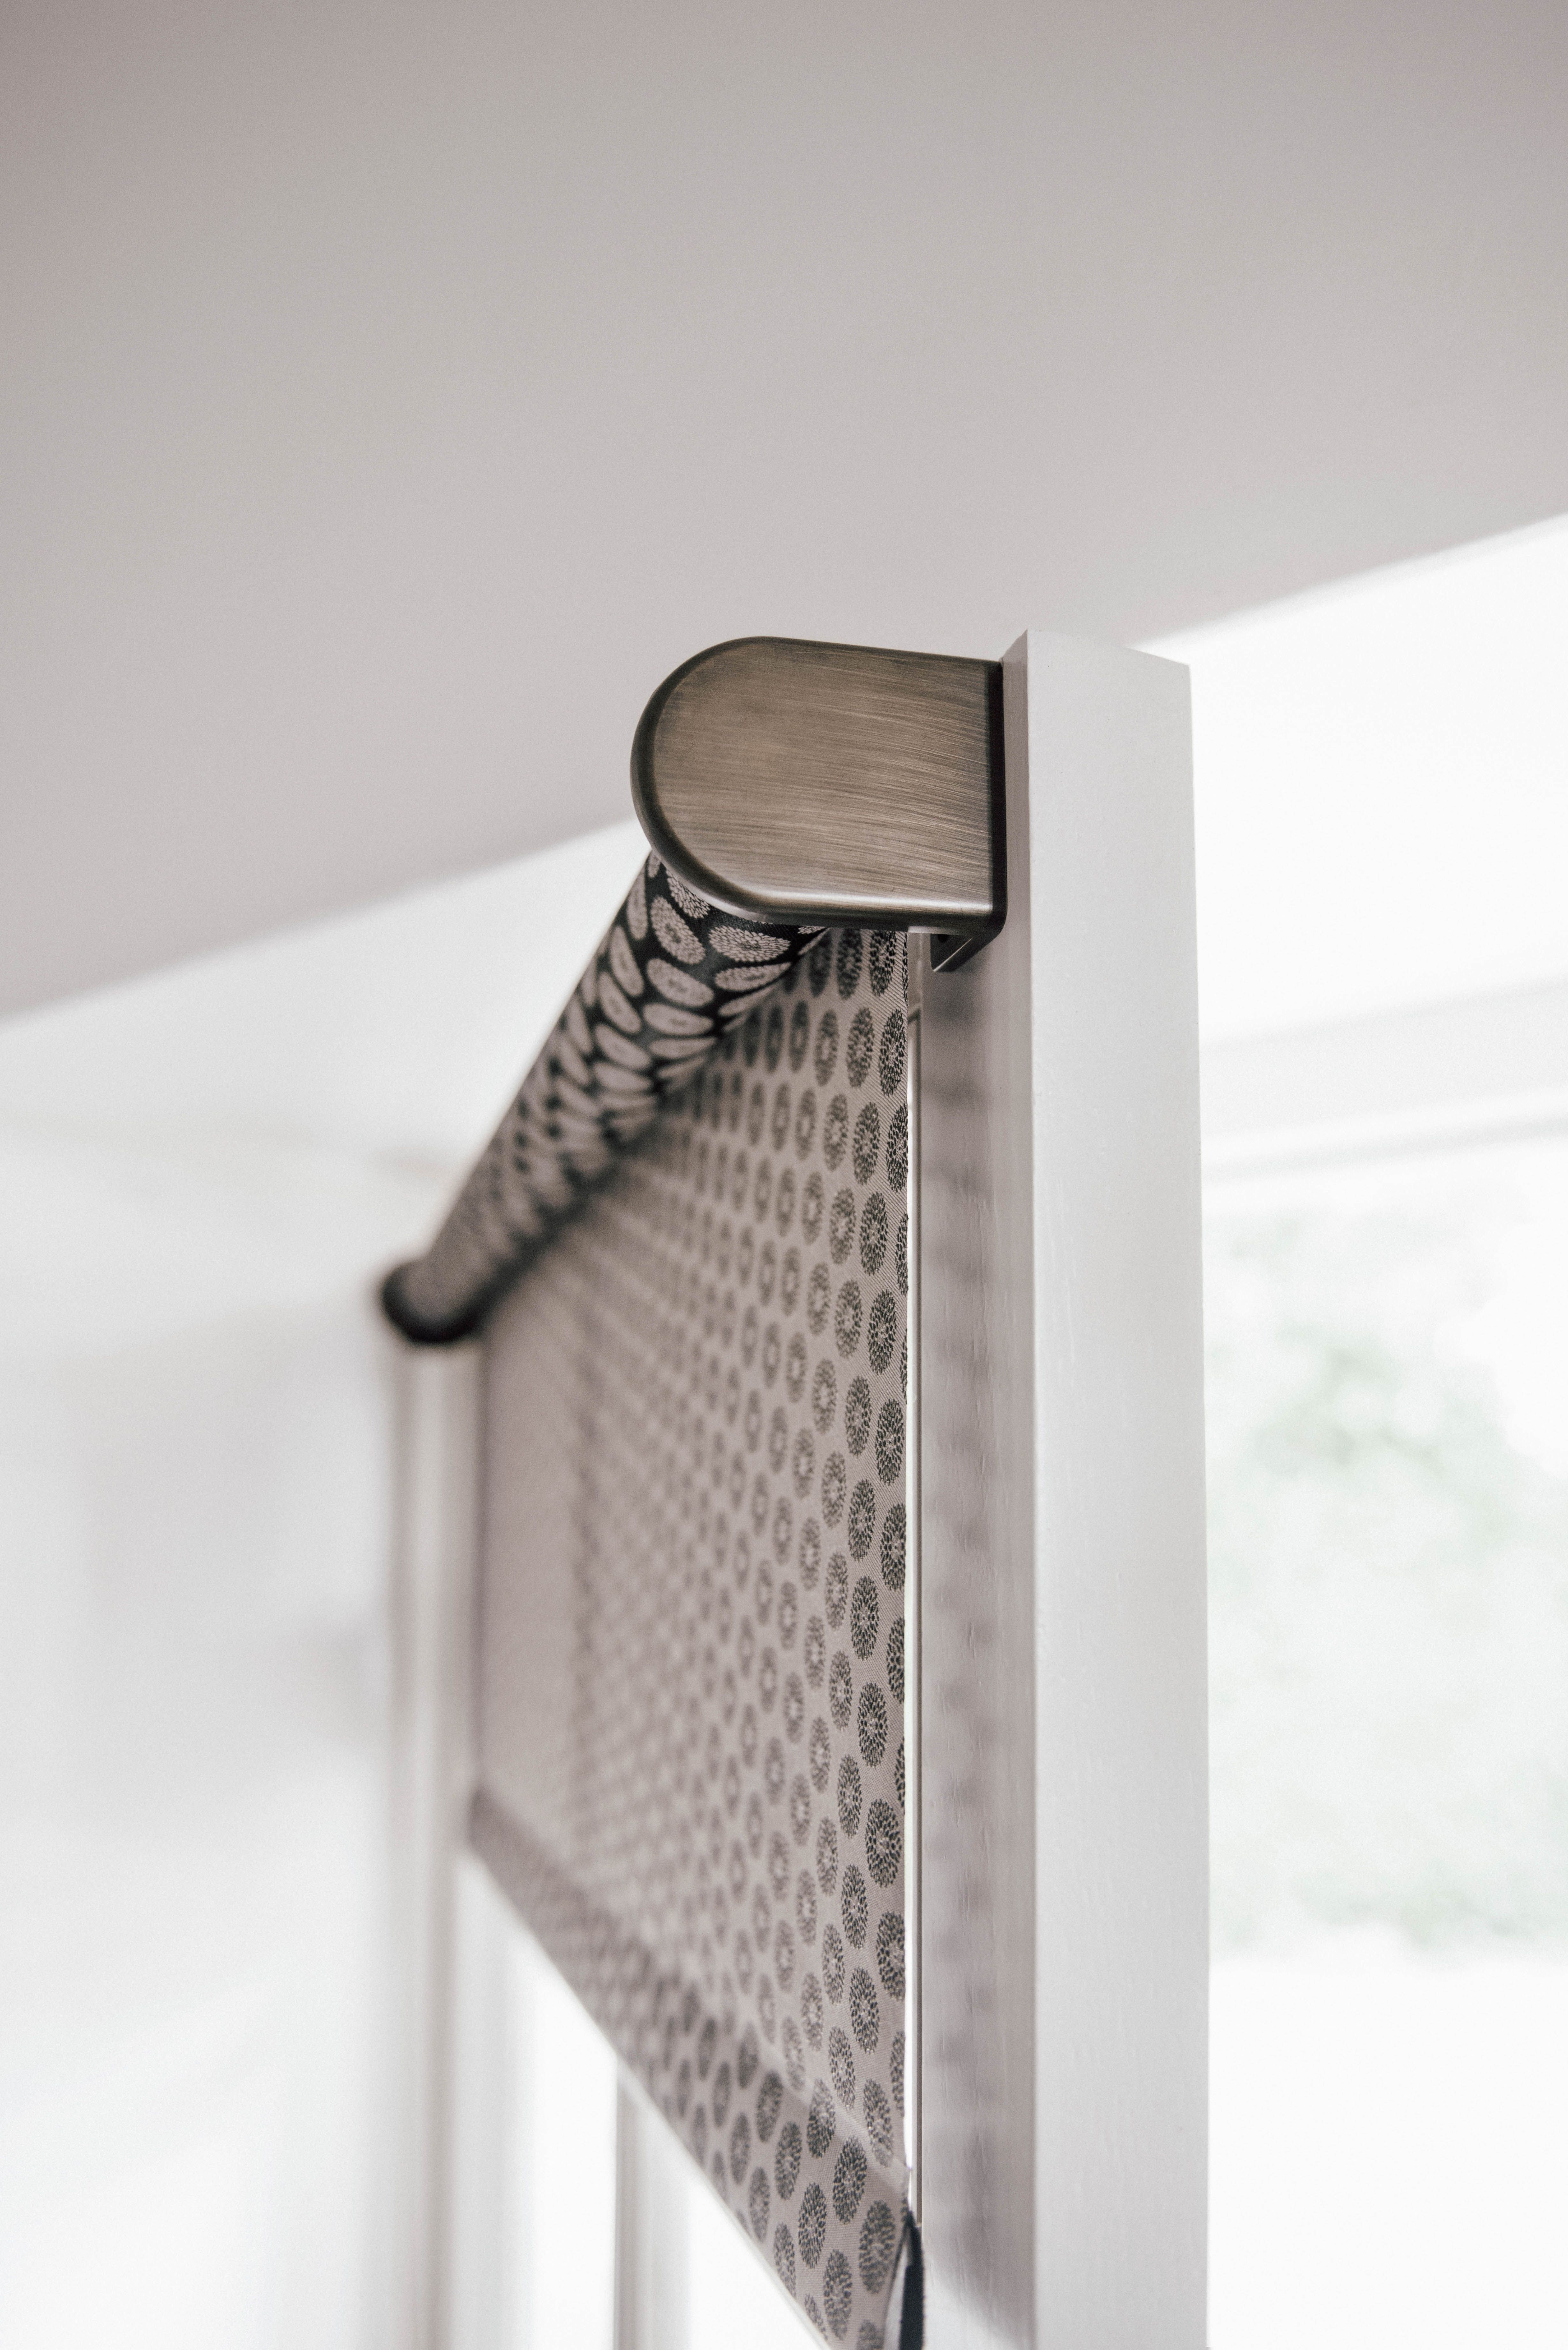 Roller Shades Displaying The Regular Roll Type Shown In Material